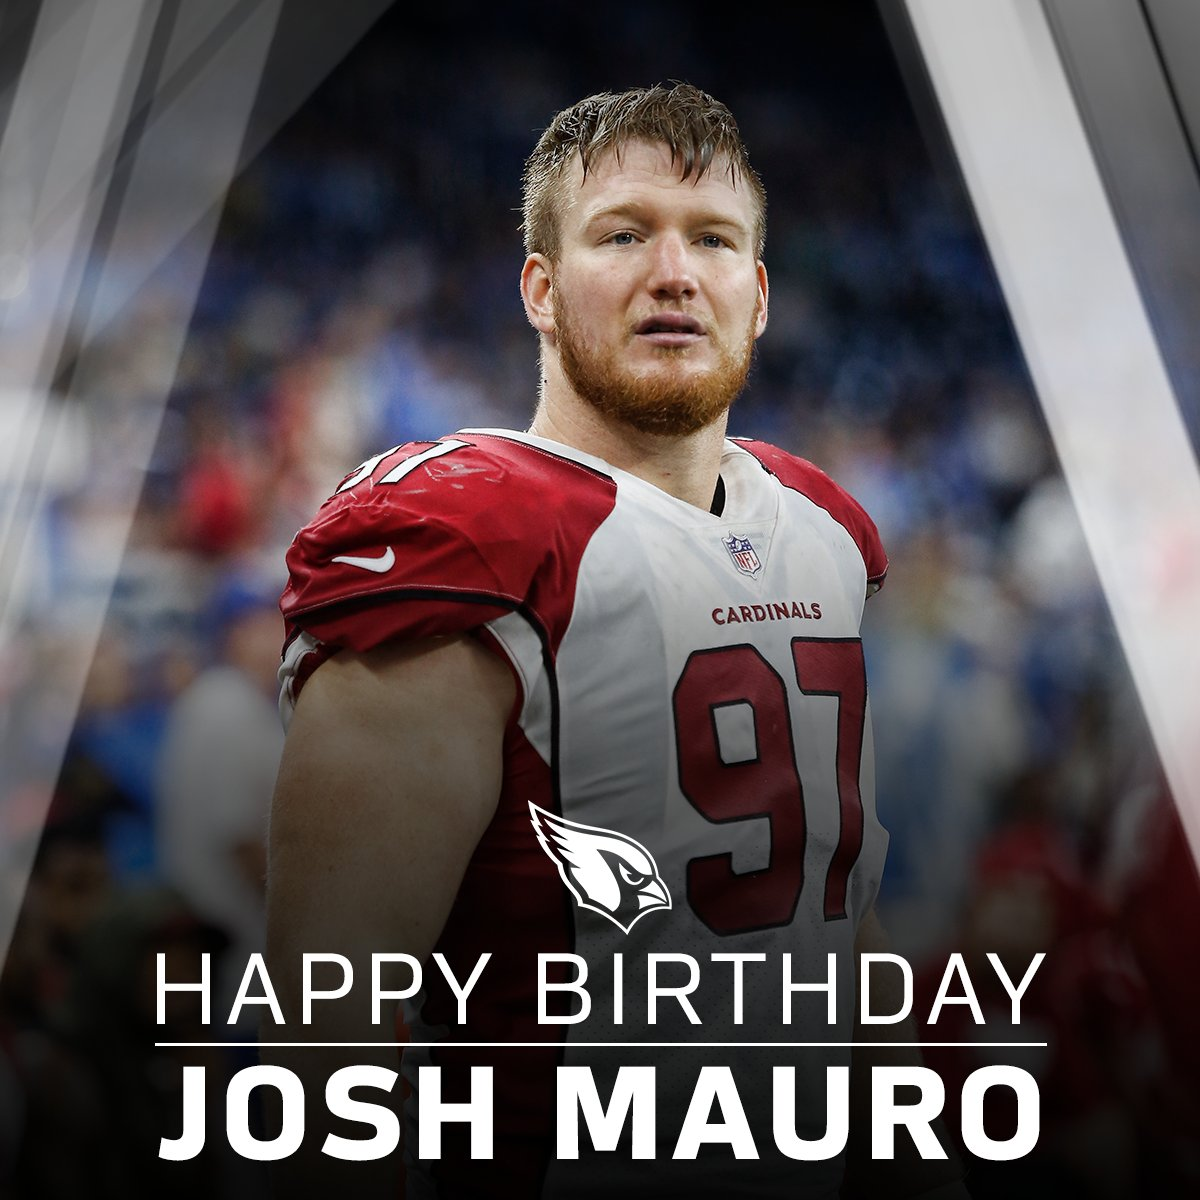 RT to wish @JustJoshin90 a Happy Birthday! https://t.co/wGpBNNOd5K